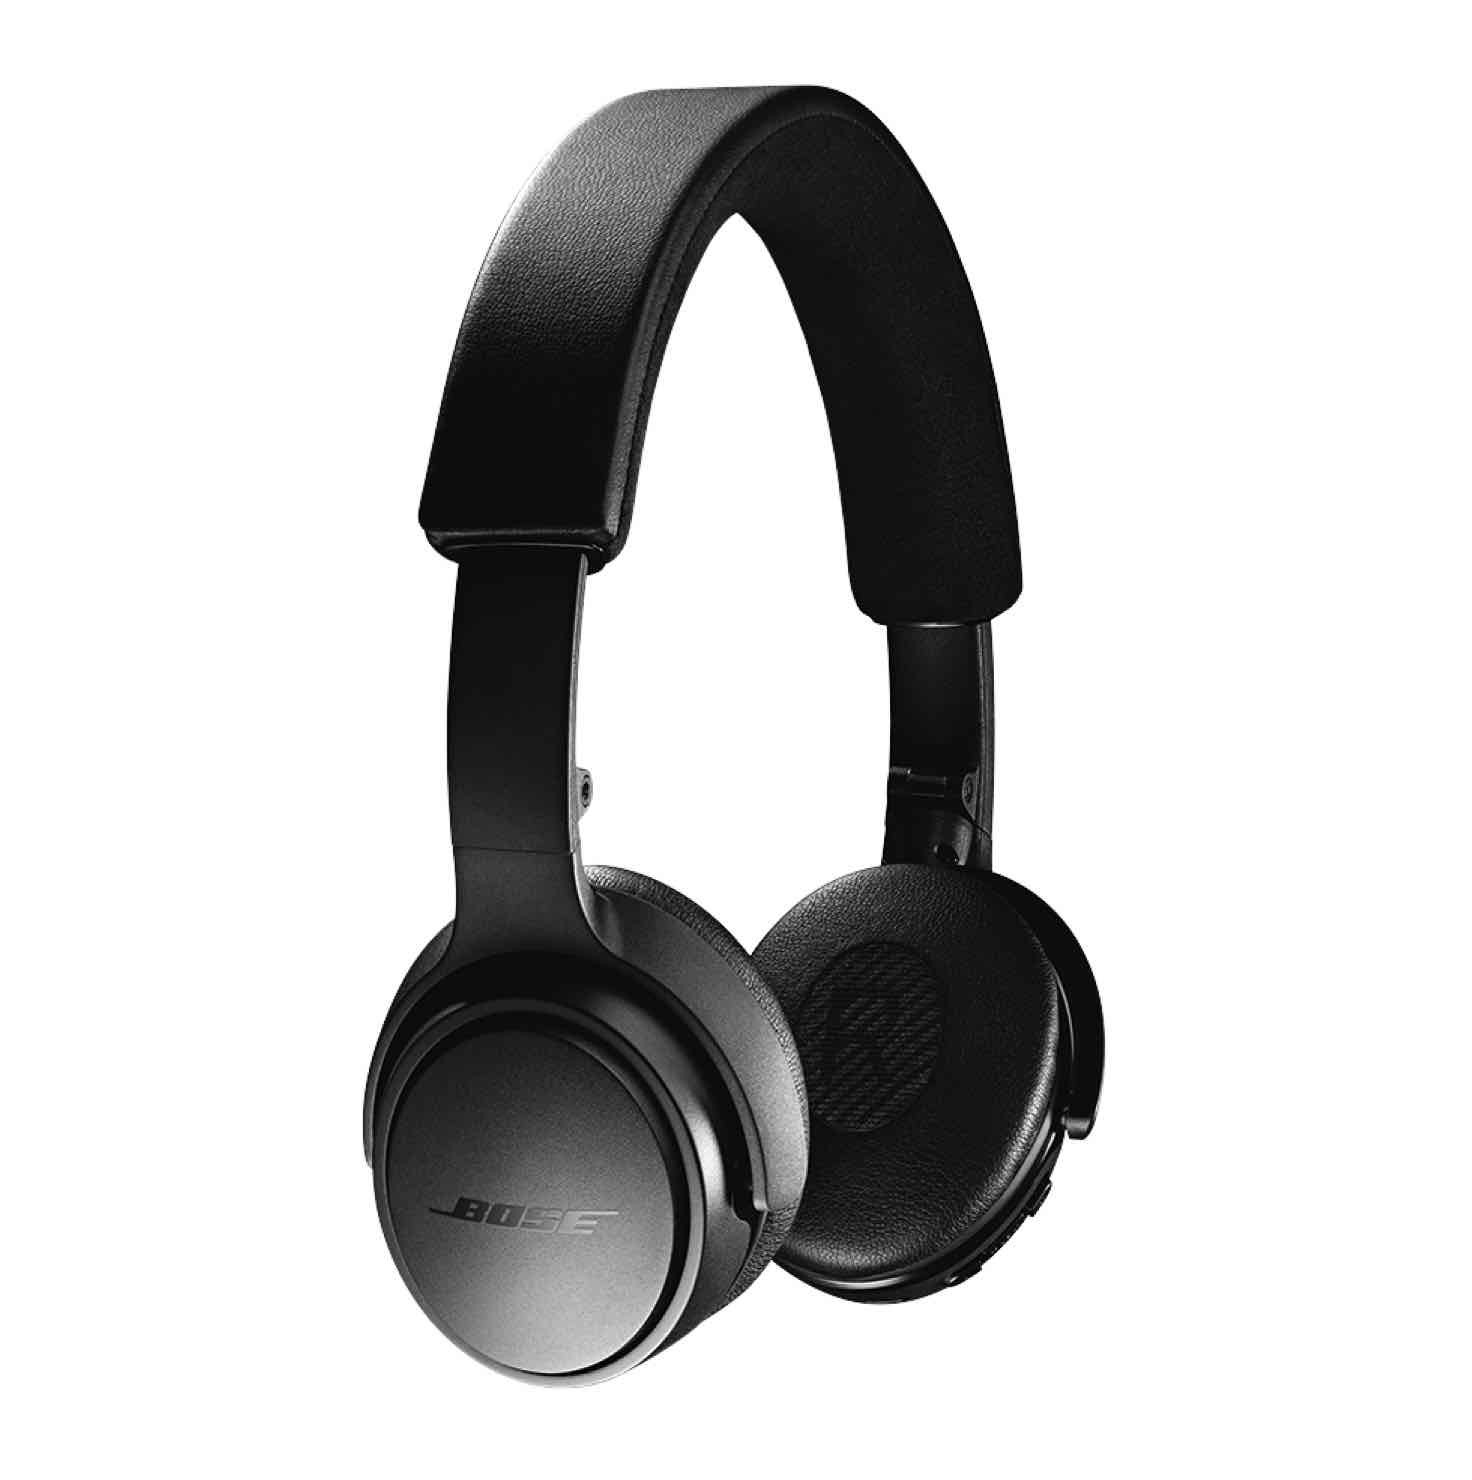 bose on ear wireless headphones. Black Bedroom Furniture Sets. Home Design Ideas